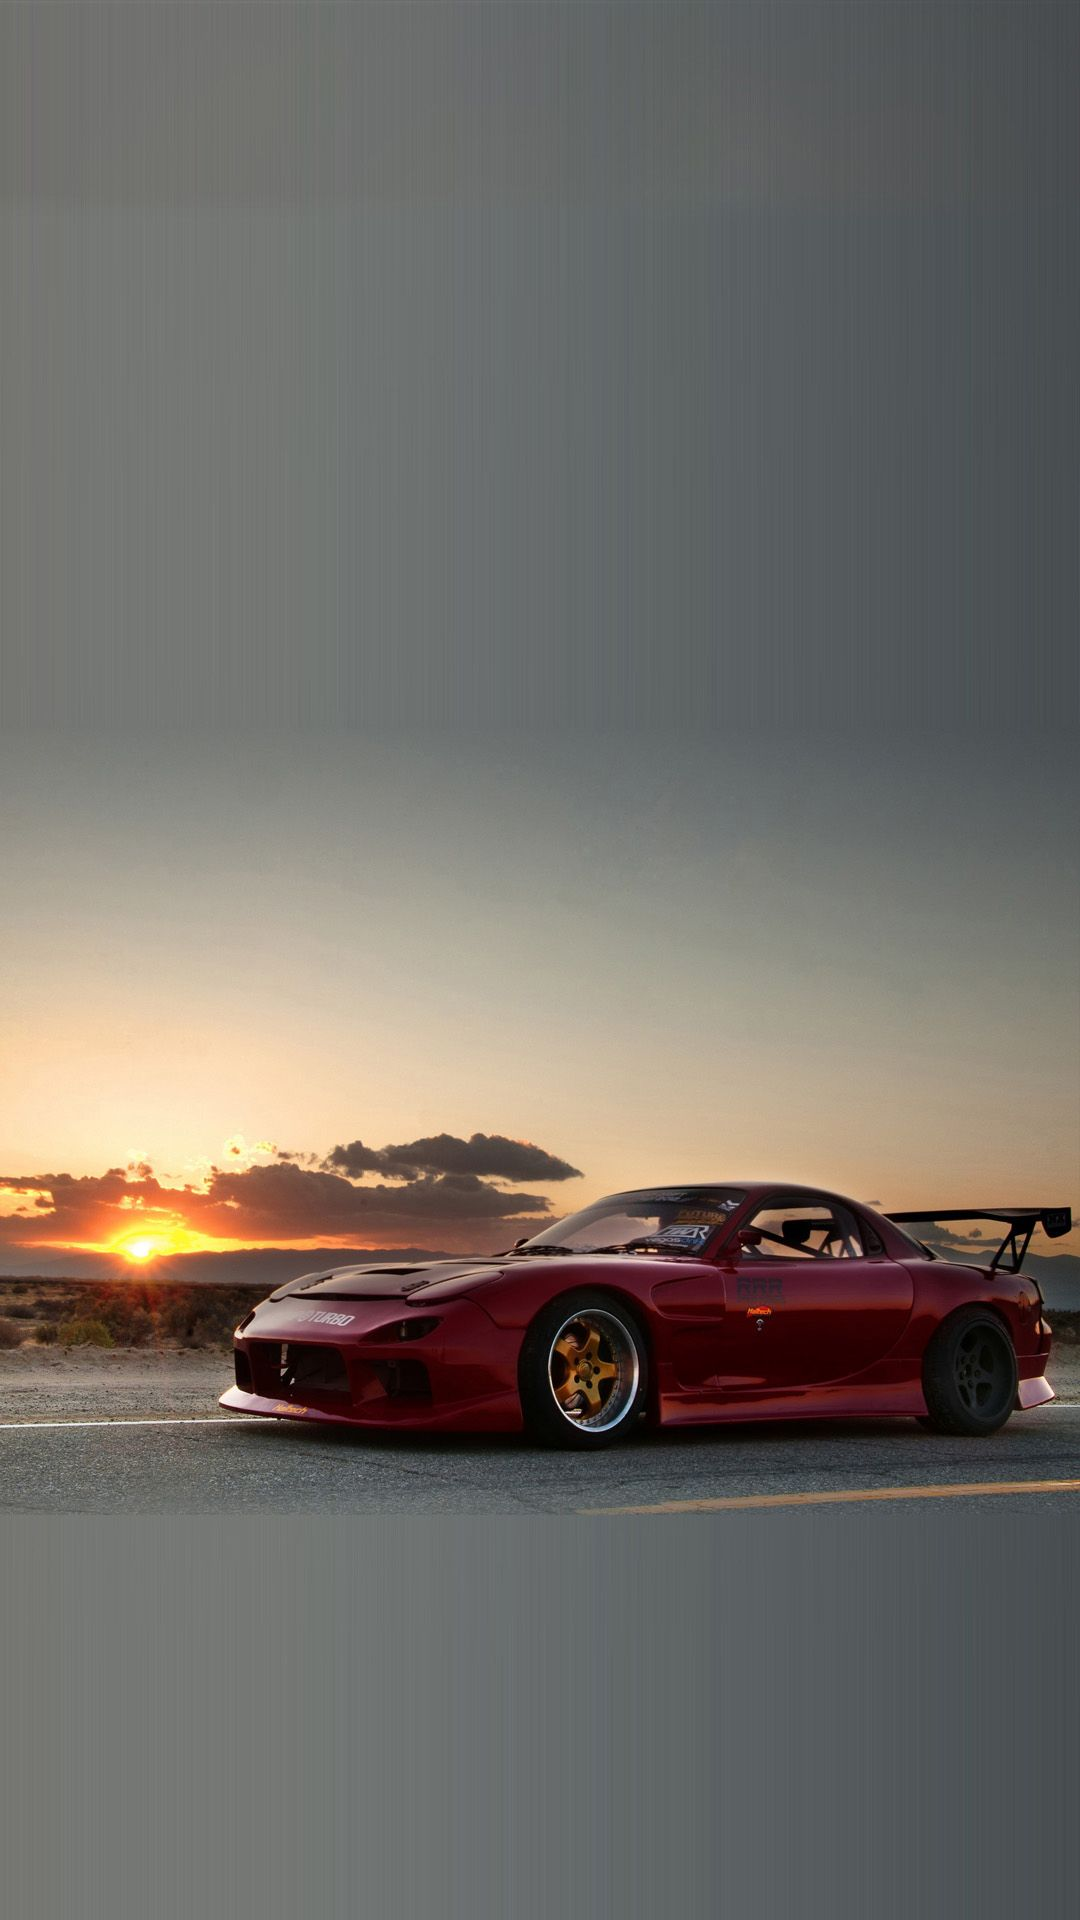 Cars Mazda Rx7 Sunset Android Wallpaper Wallpapers Hd 4k